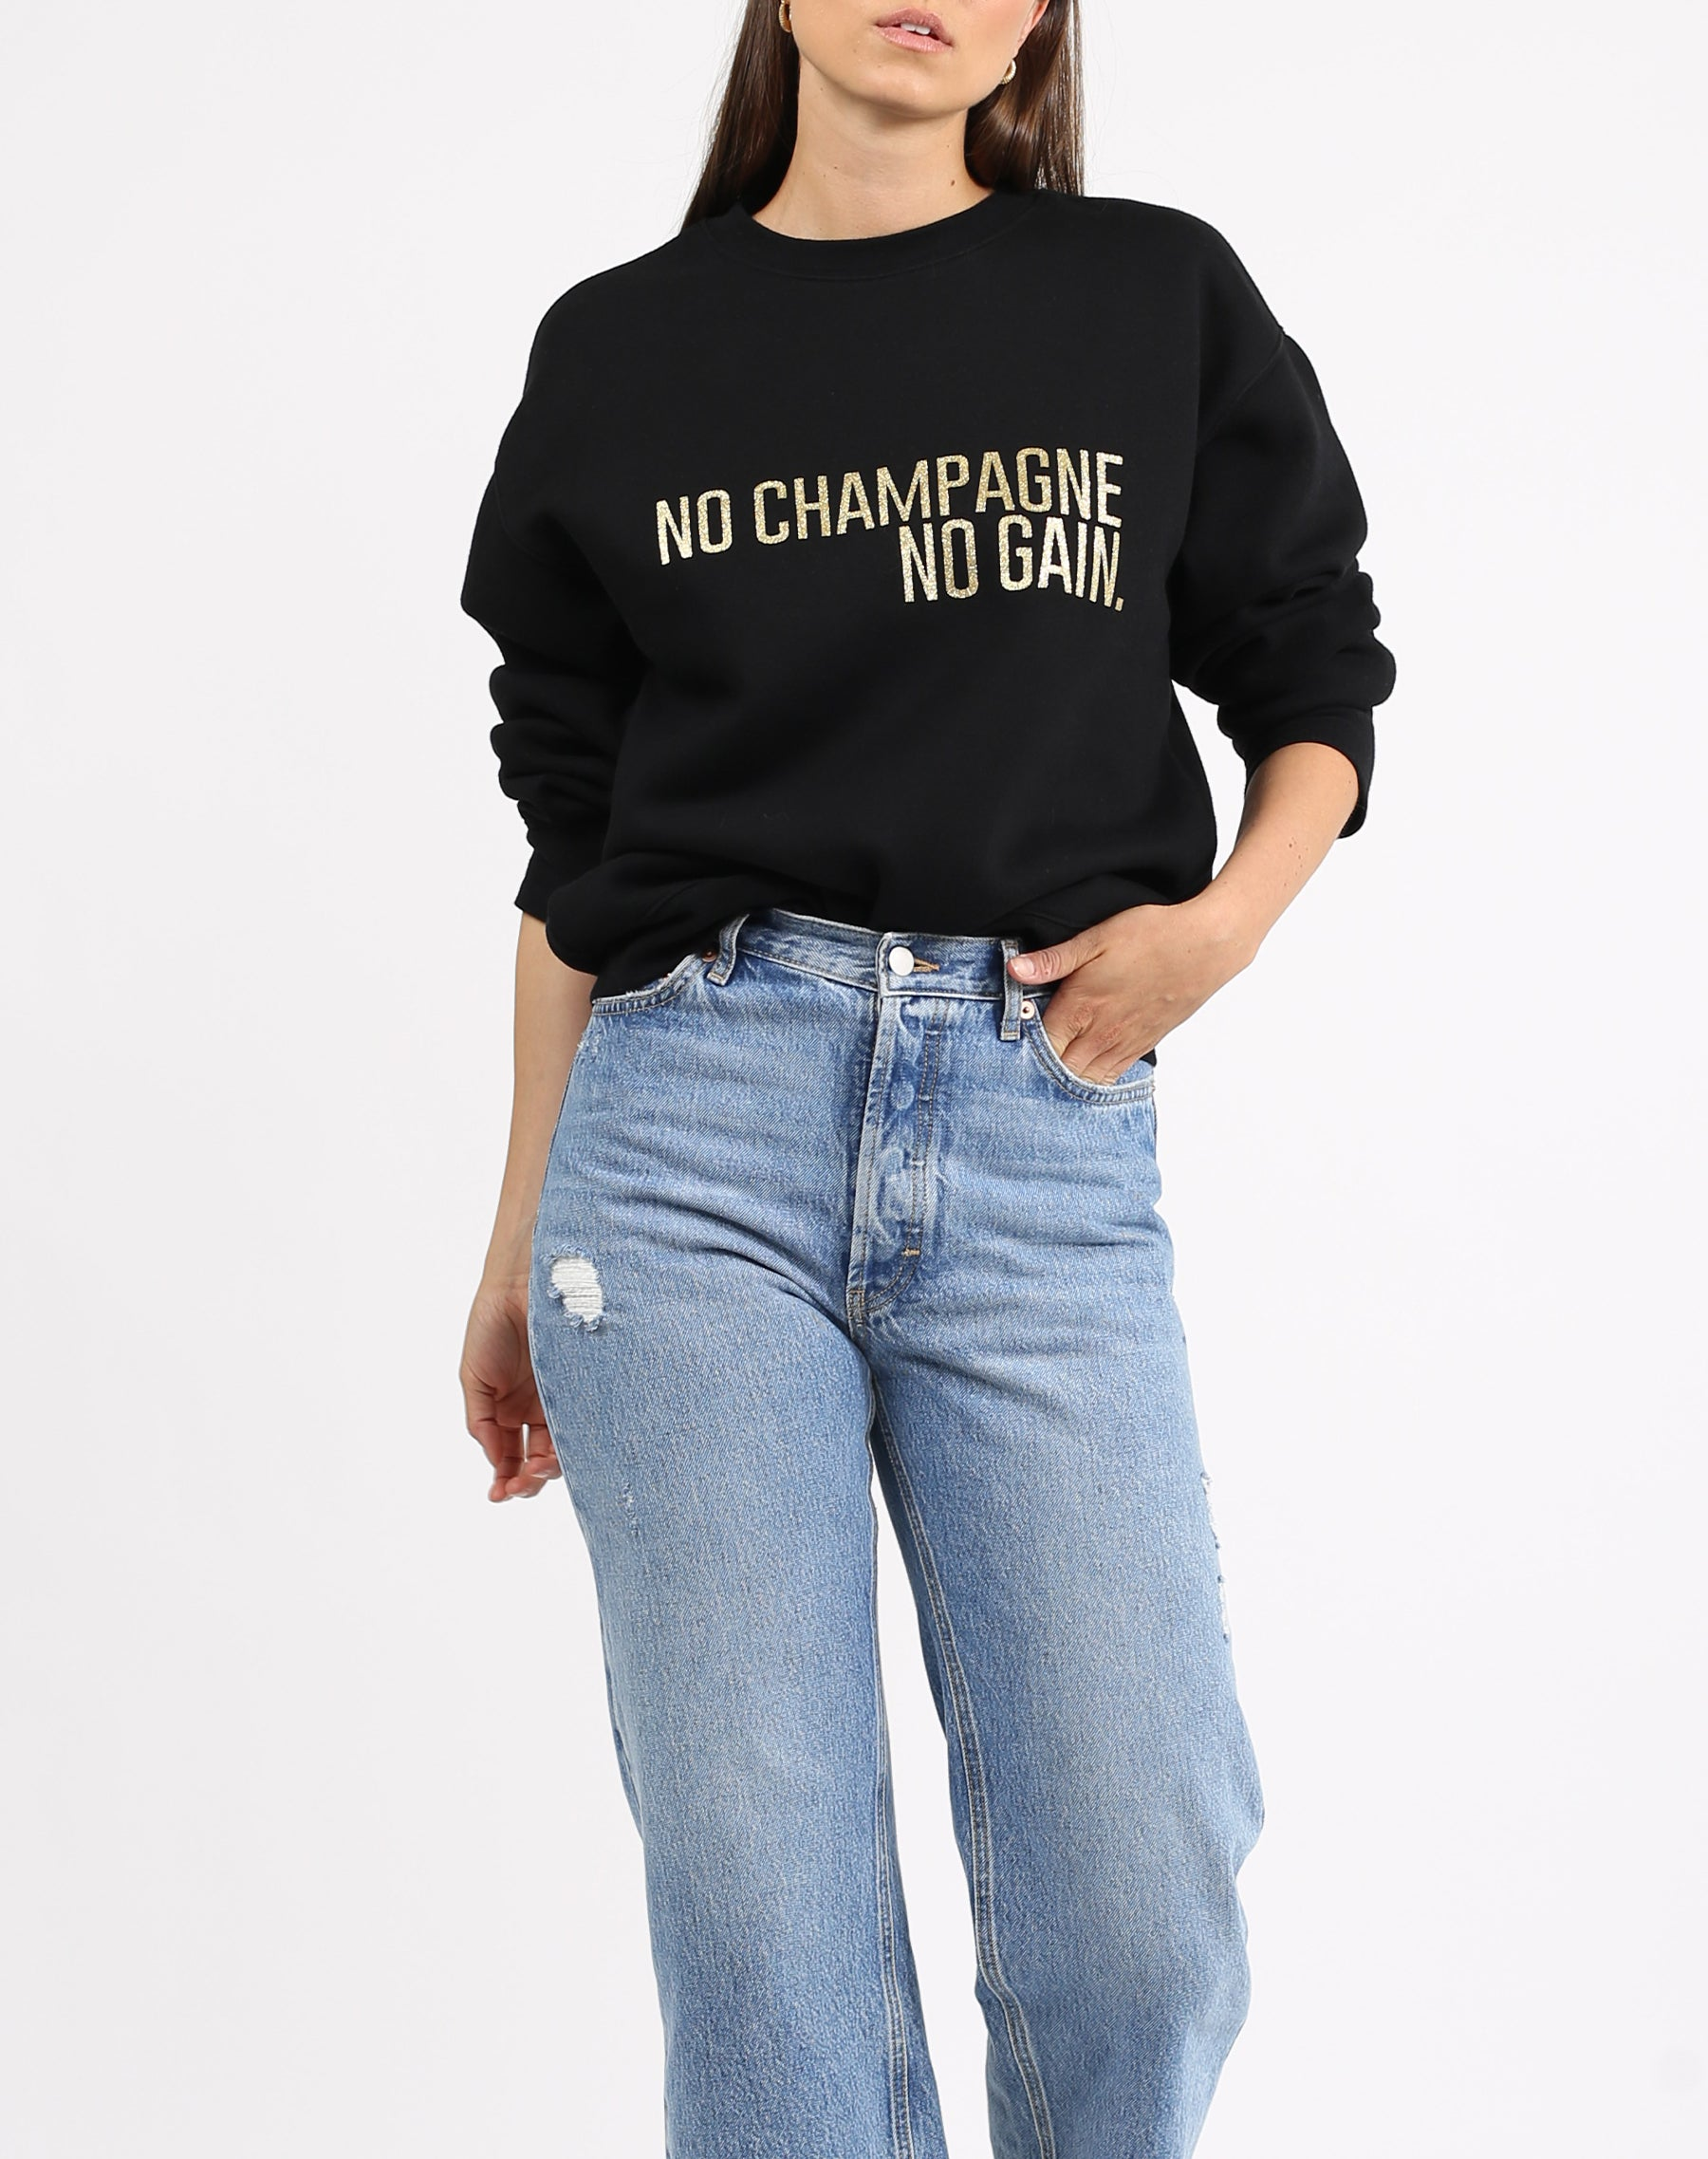 This is a photo of a model wearing the No Champgne Gold Glitter Classic Crew Neck Sweatshirt in Black by Brunette the Label.